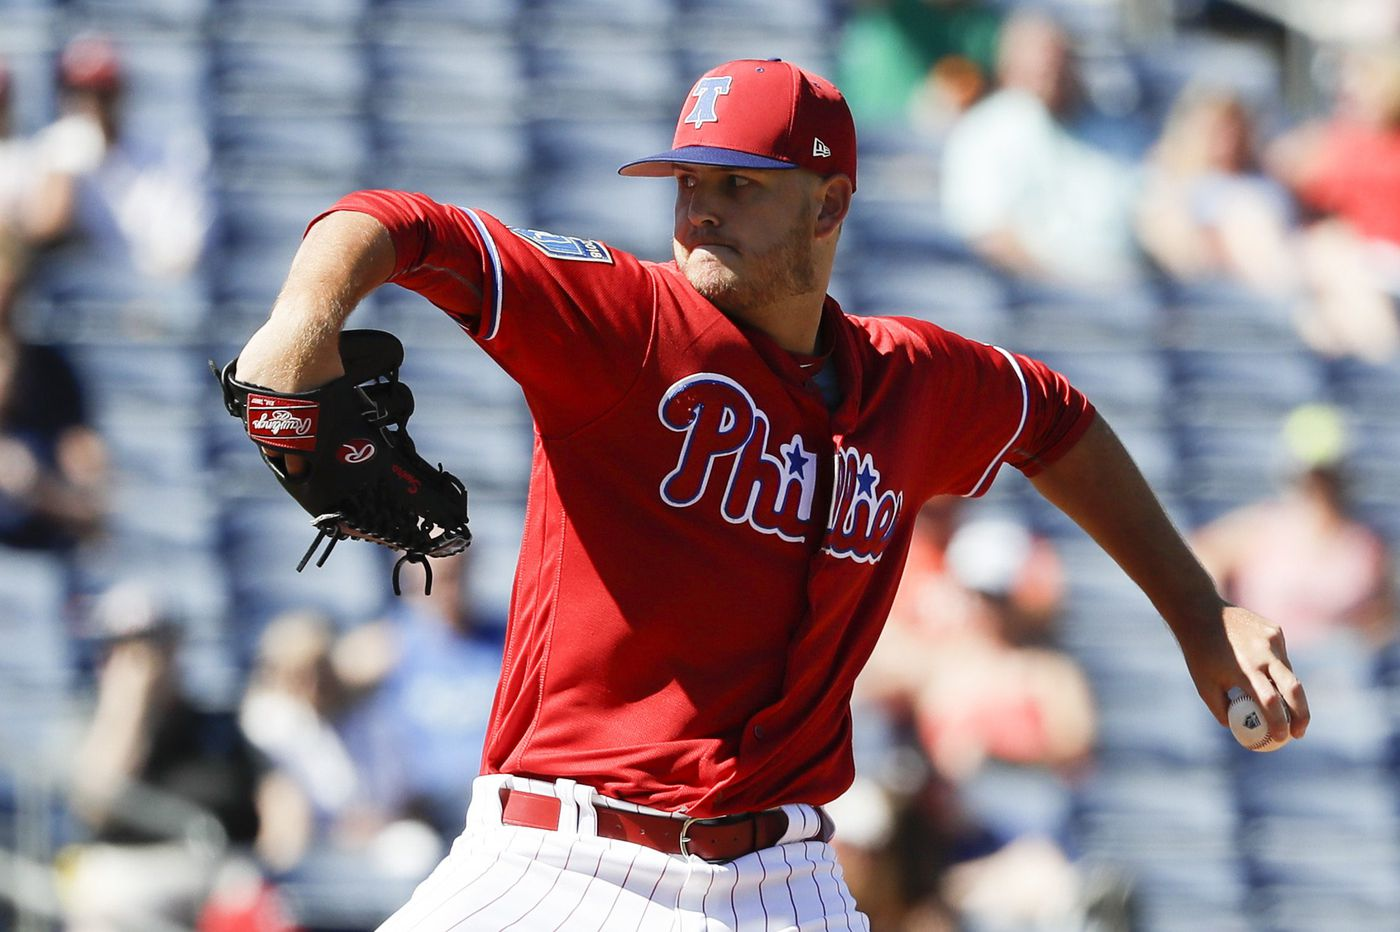 Phillies minor league report: Meneses, Irvin lead Lehigh Valley to series win